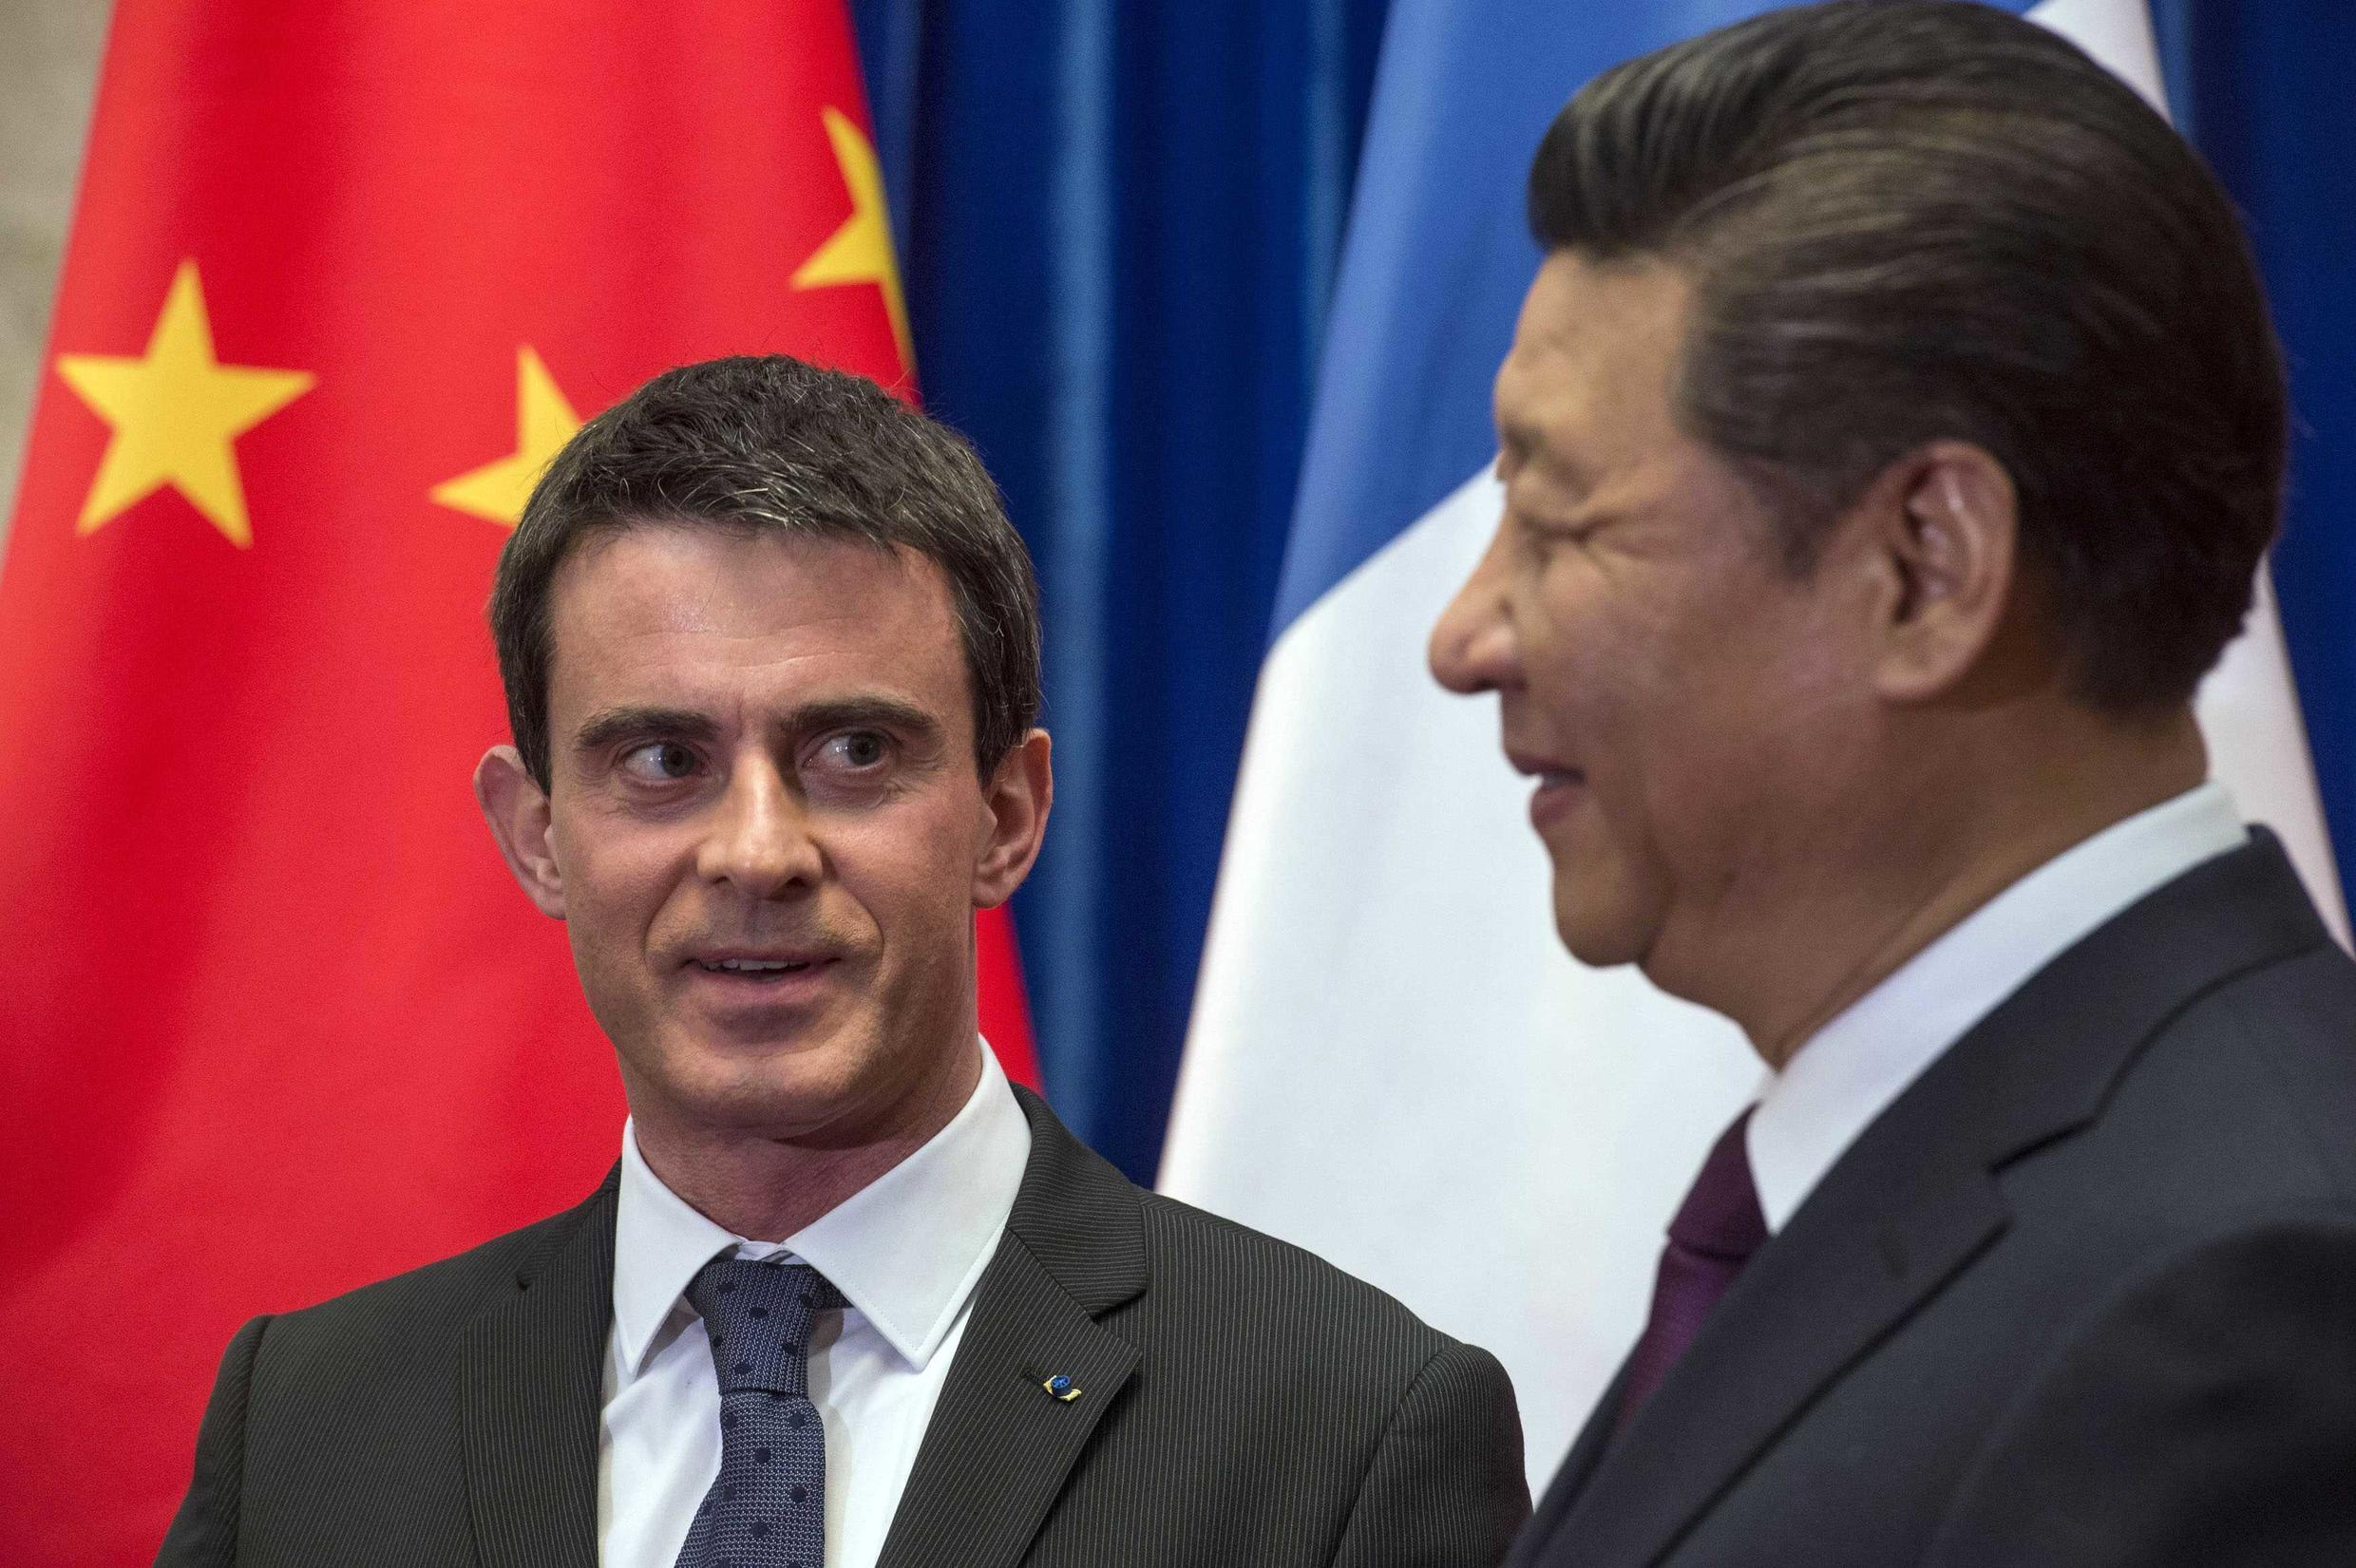 French Prime Minister Manuel Valls meets Chinese President Xi Jinping